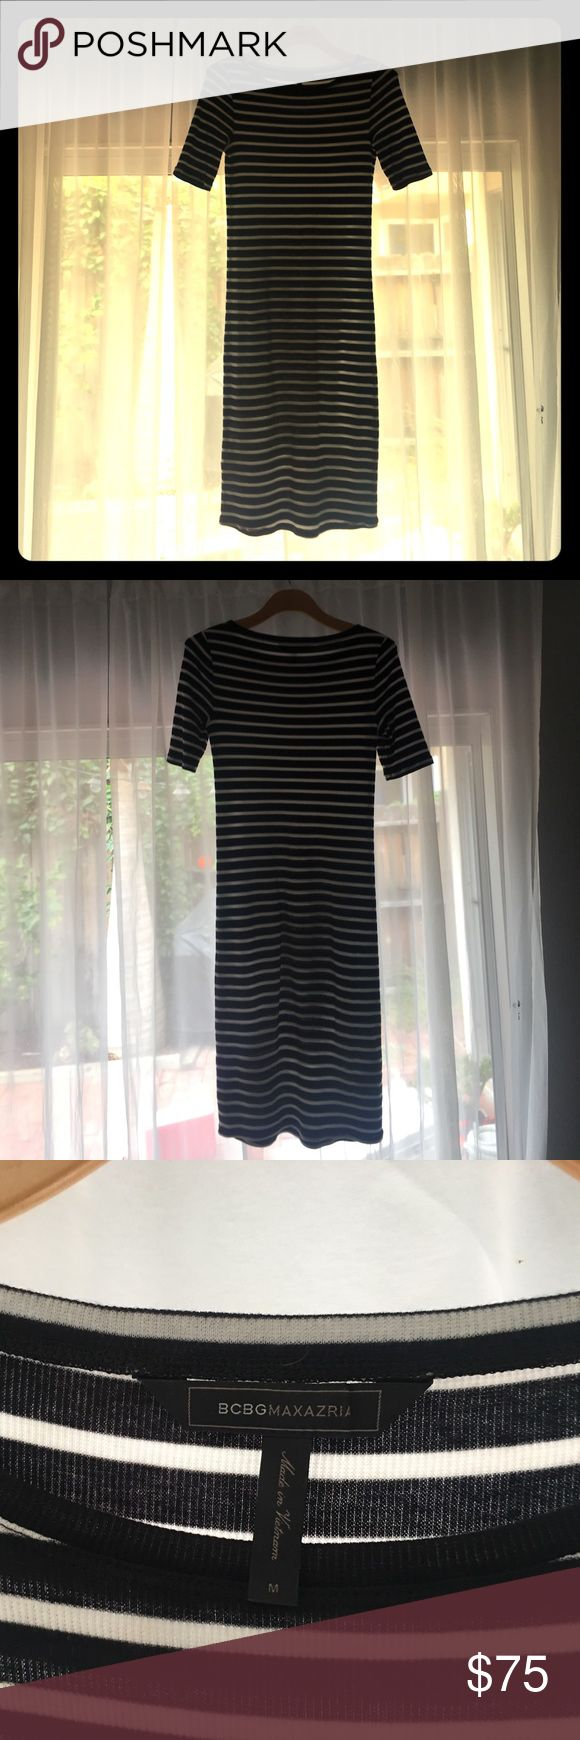 BCBG MaxAzira Stripe Maternity Dress M Black and White Stripe Maternity Dress, knee length, 3/4 length sleeves, Size Medium BCBGMaxAzria Dresses